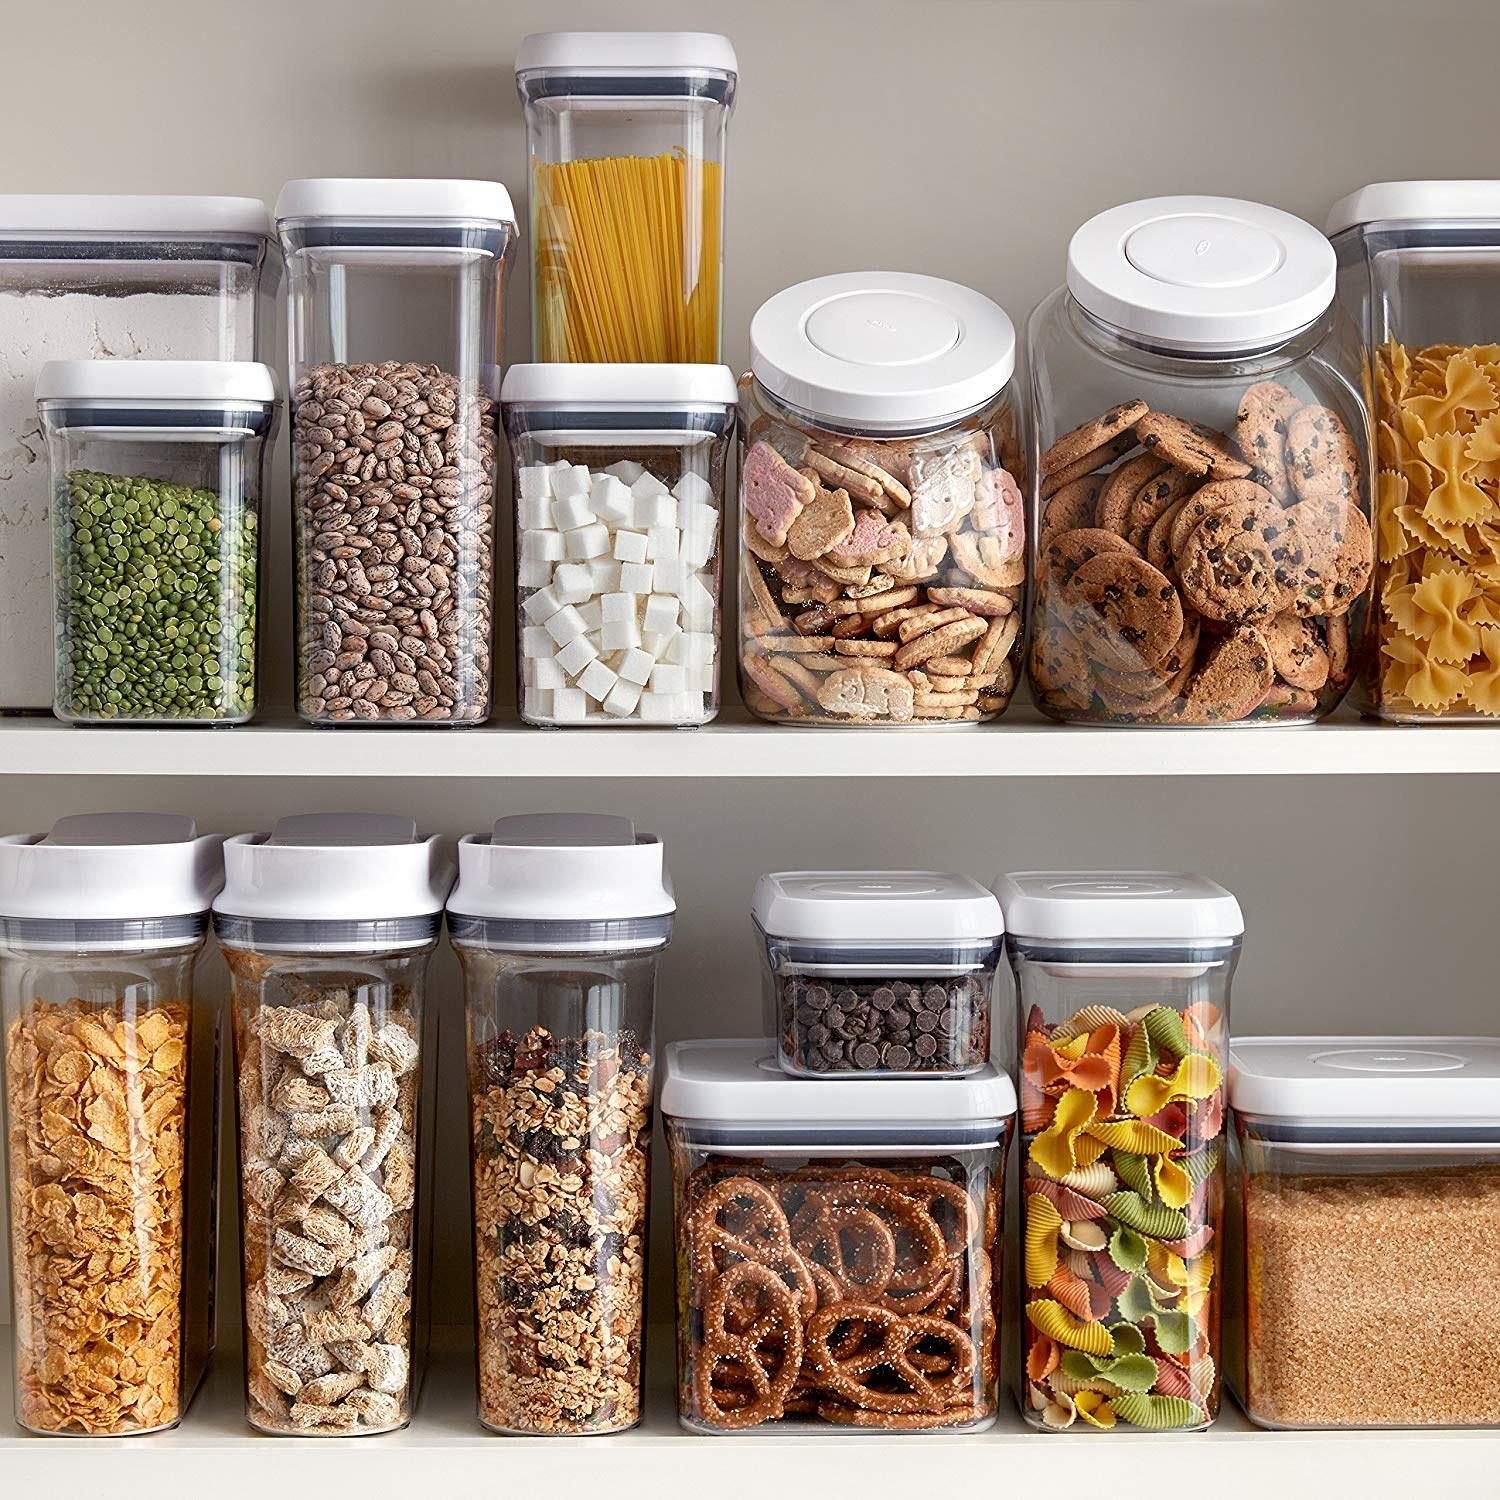 """Promising review: """"This is the second set of OXO Pop containers that I have purchased. I bought the really big set a while ago and was hooked. No longer will my white rice/grains/rolled oats/grits go wormy (I know...yuck); my cat's kibble is stored in a clear container so I can see when it's running low. (FYI: the pet food container is not included in these sets, but is worth the additional purchase.) I love these containers. They are lightweight enough so there's no strain on the wrists, yet heavy enough they don't tip over easily. The lids are easy to clean, and you could apply labels to distinguish between flours and sugars. They are expensive, but I believe you get what you pay for — quality costs extra money. If I need another set in the future, I will buy it."""" —Judith A LoueGet it from Amazon for $47.59 (for a five-piece set)."""